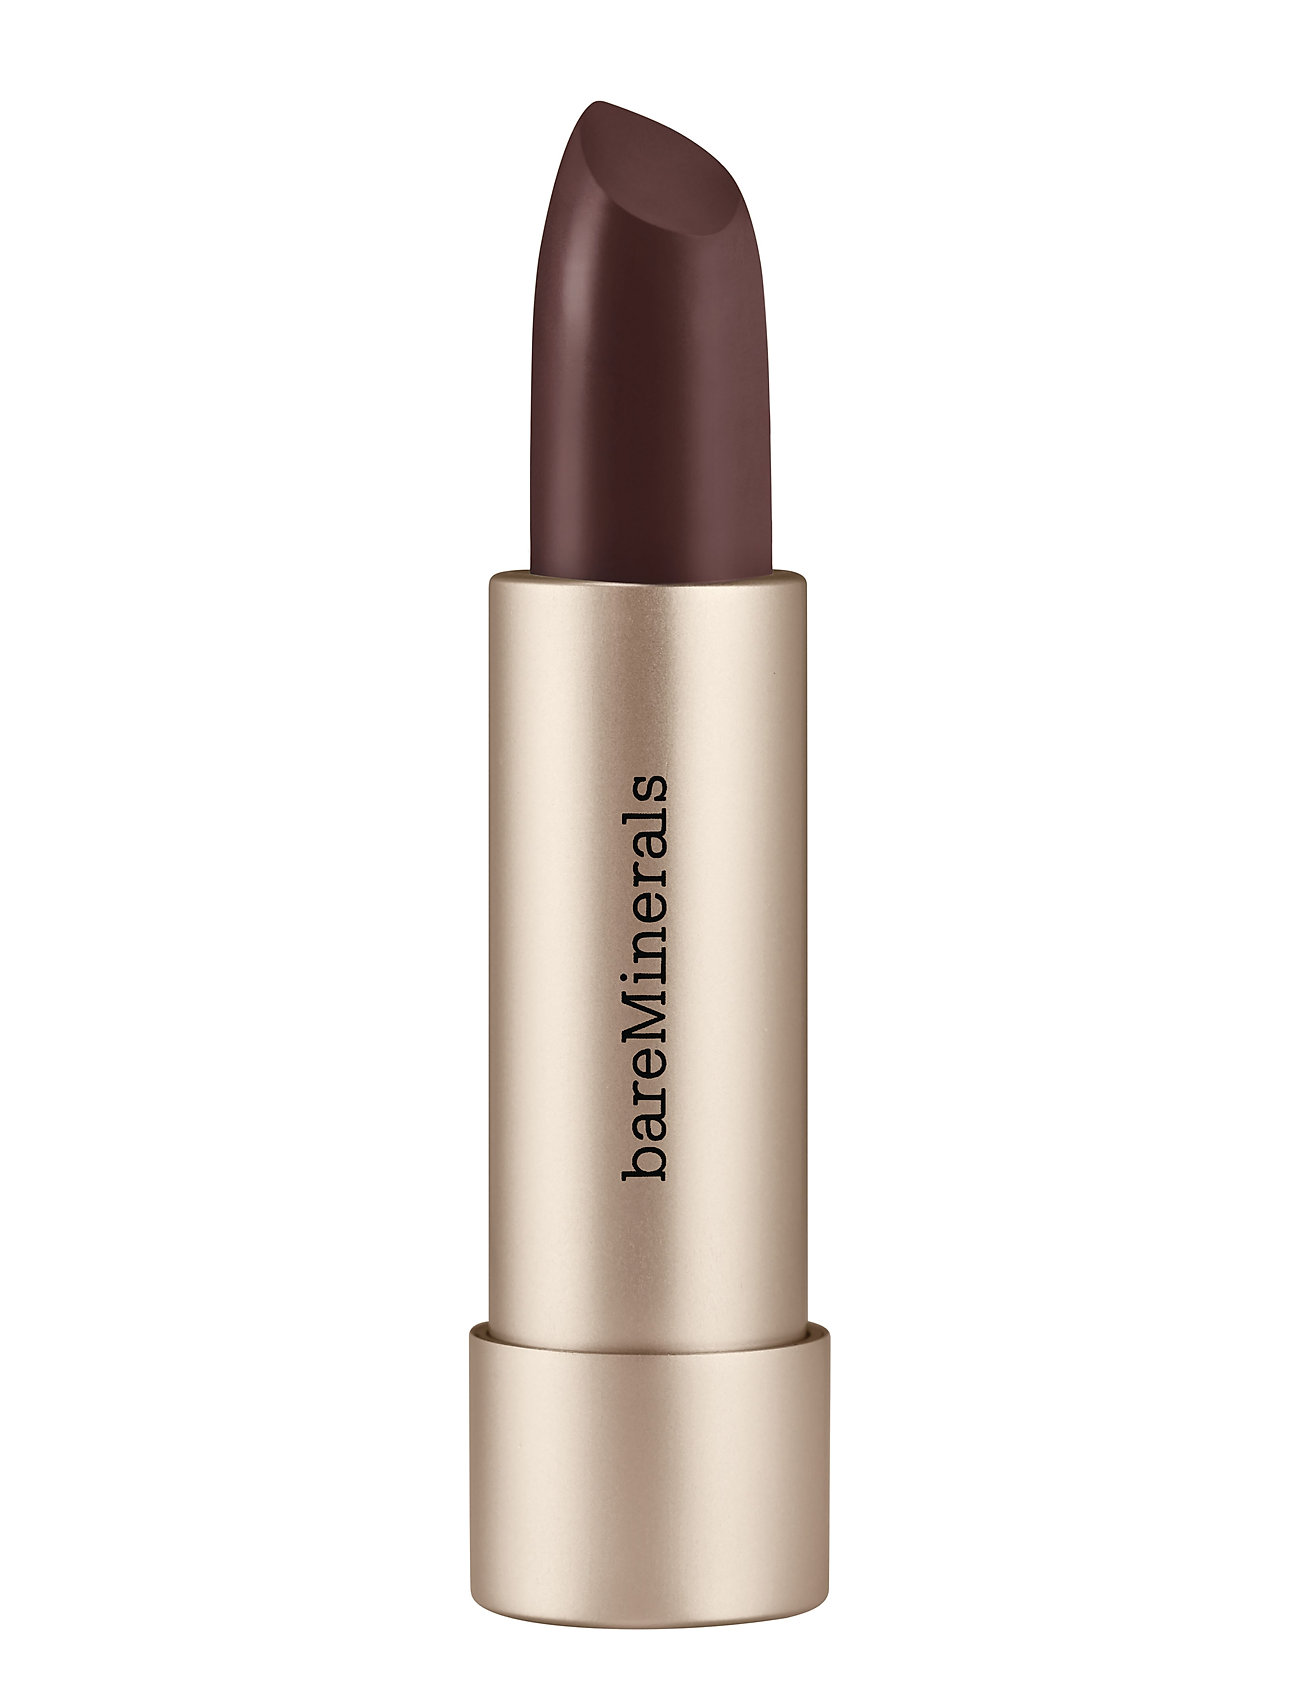 Image of Mineralist Hydra-Smoothing Lipstick Willpower Læbestift Makeup BareMinerals (3418623899)